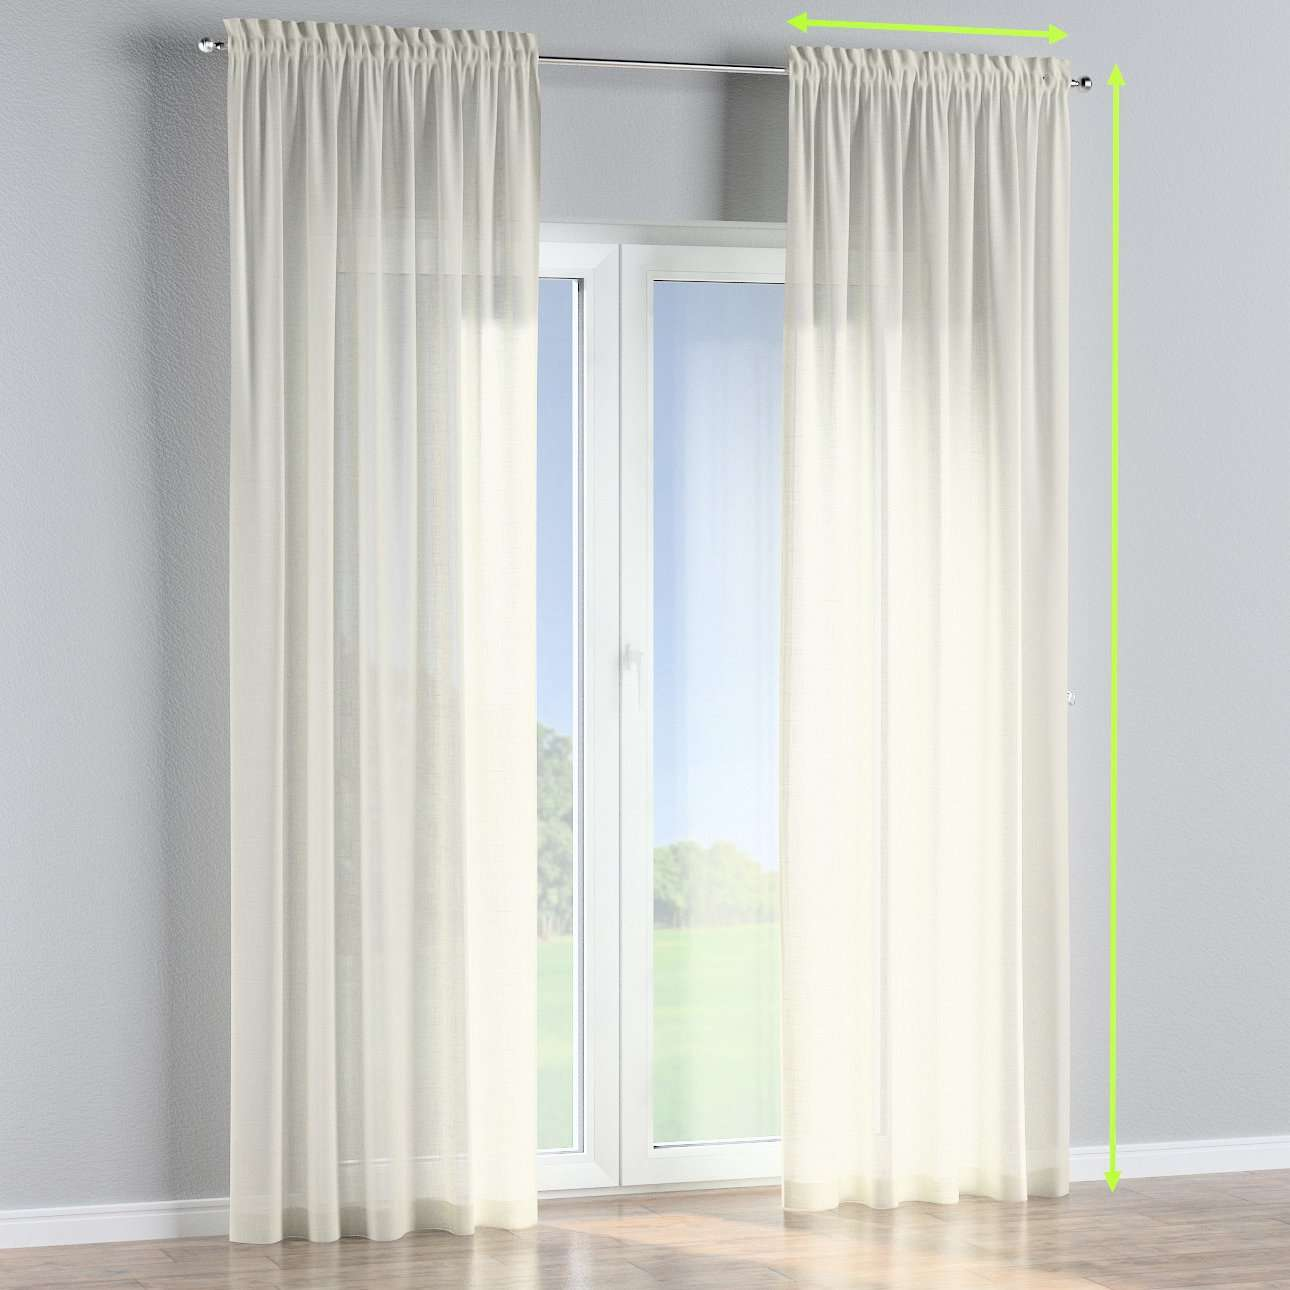 Slot and frill curtains in collection Romantica, fabric: 128-88